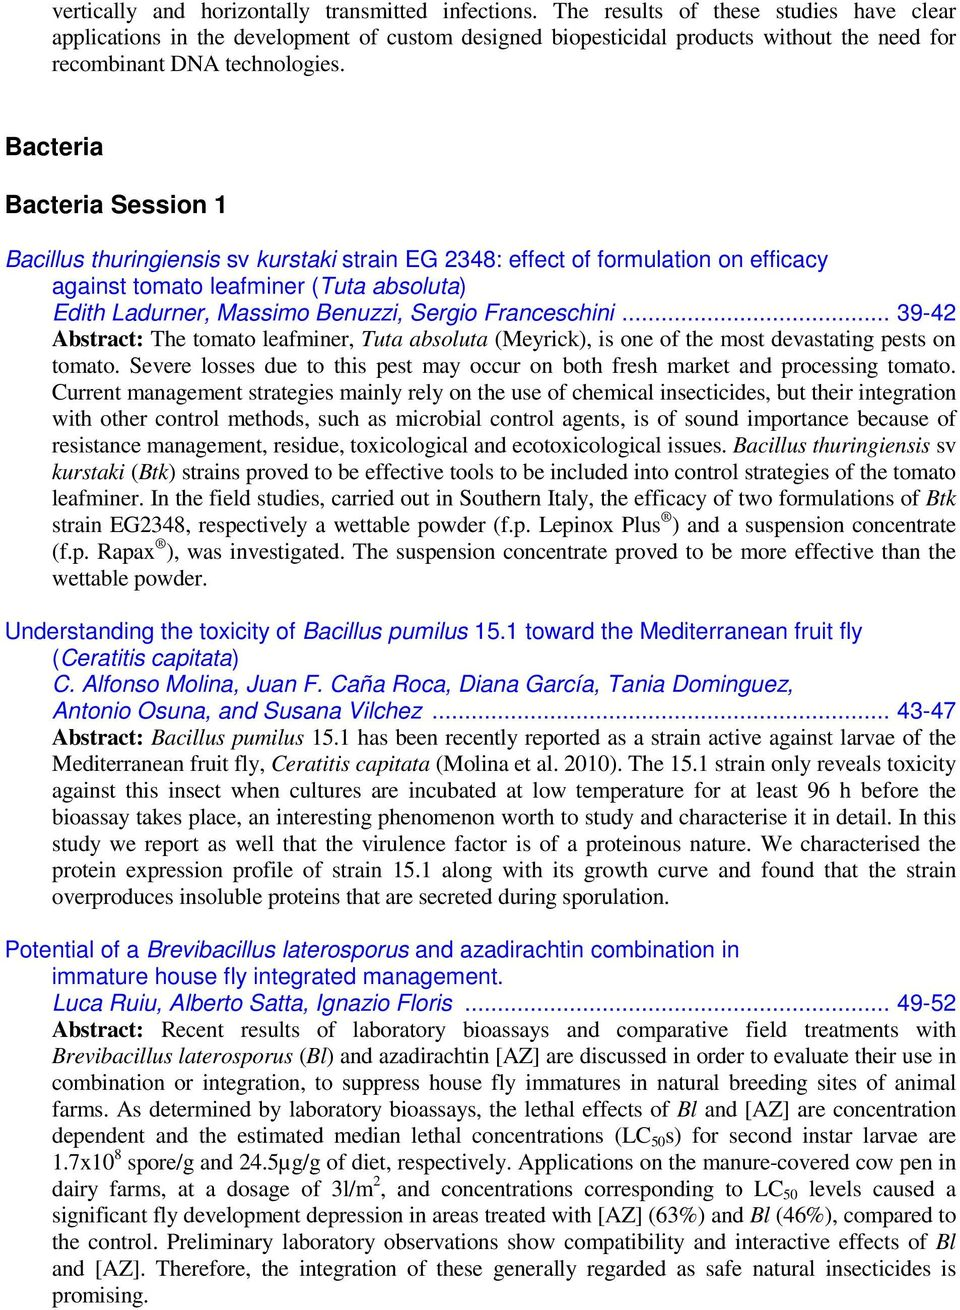 Bacteria Bacteria Session 1 Bacillus thuringiensis sv kurstaki strain EG 2348: effect of formulation on efficacy against tomato leafminer (Tuta absoluta) Edith Ladurner, Massimo Benuzzi, Sergio